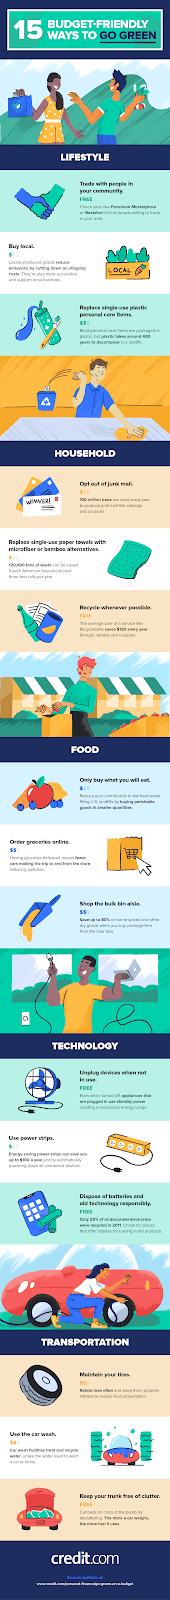 Image: Budget-Friendly Starter Guide to Going Green